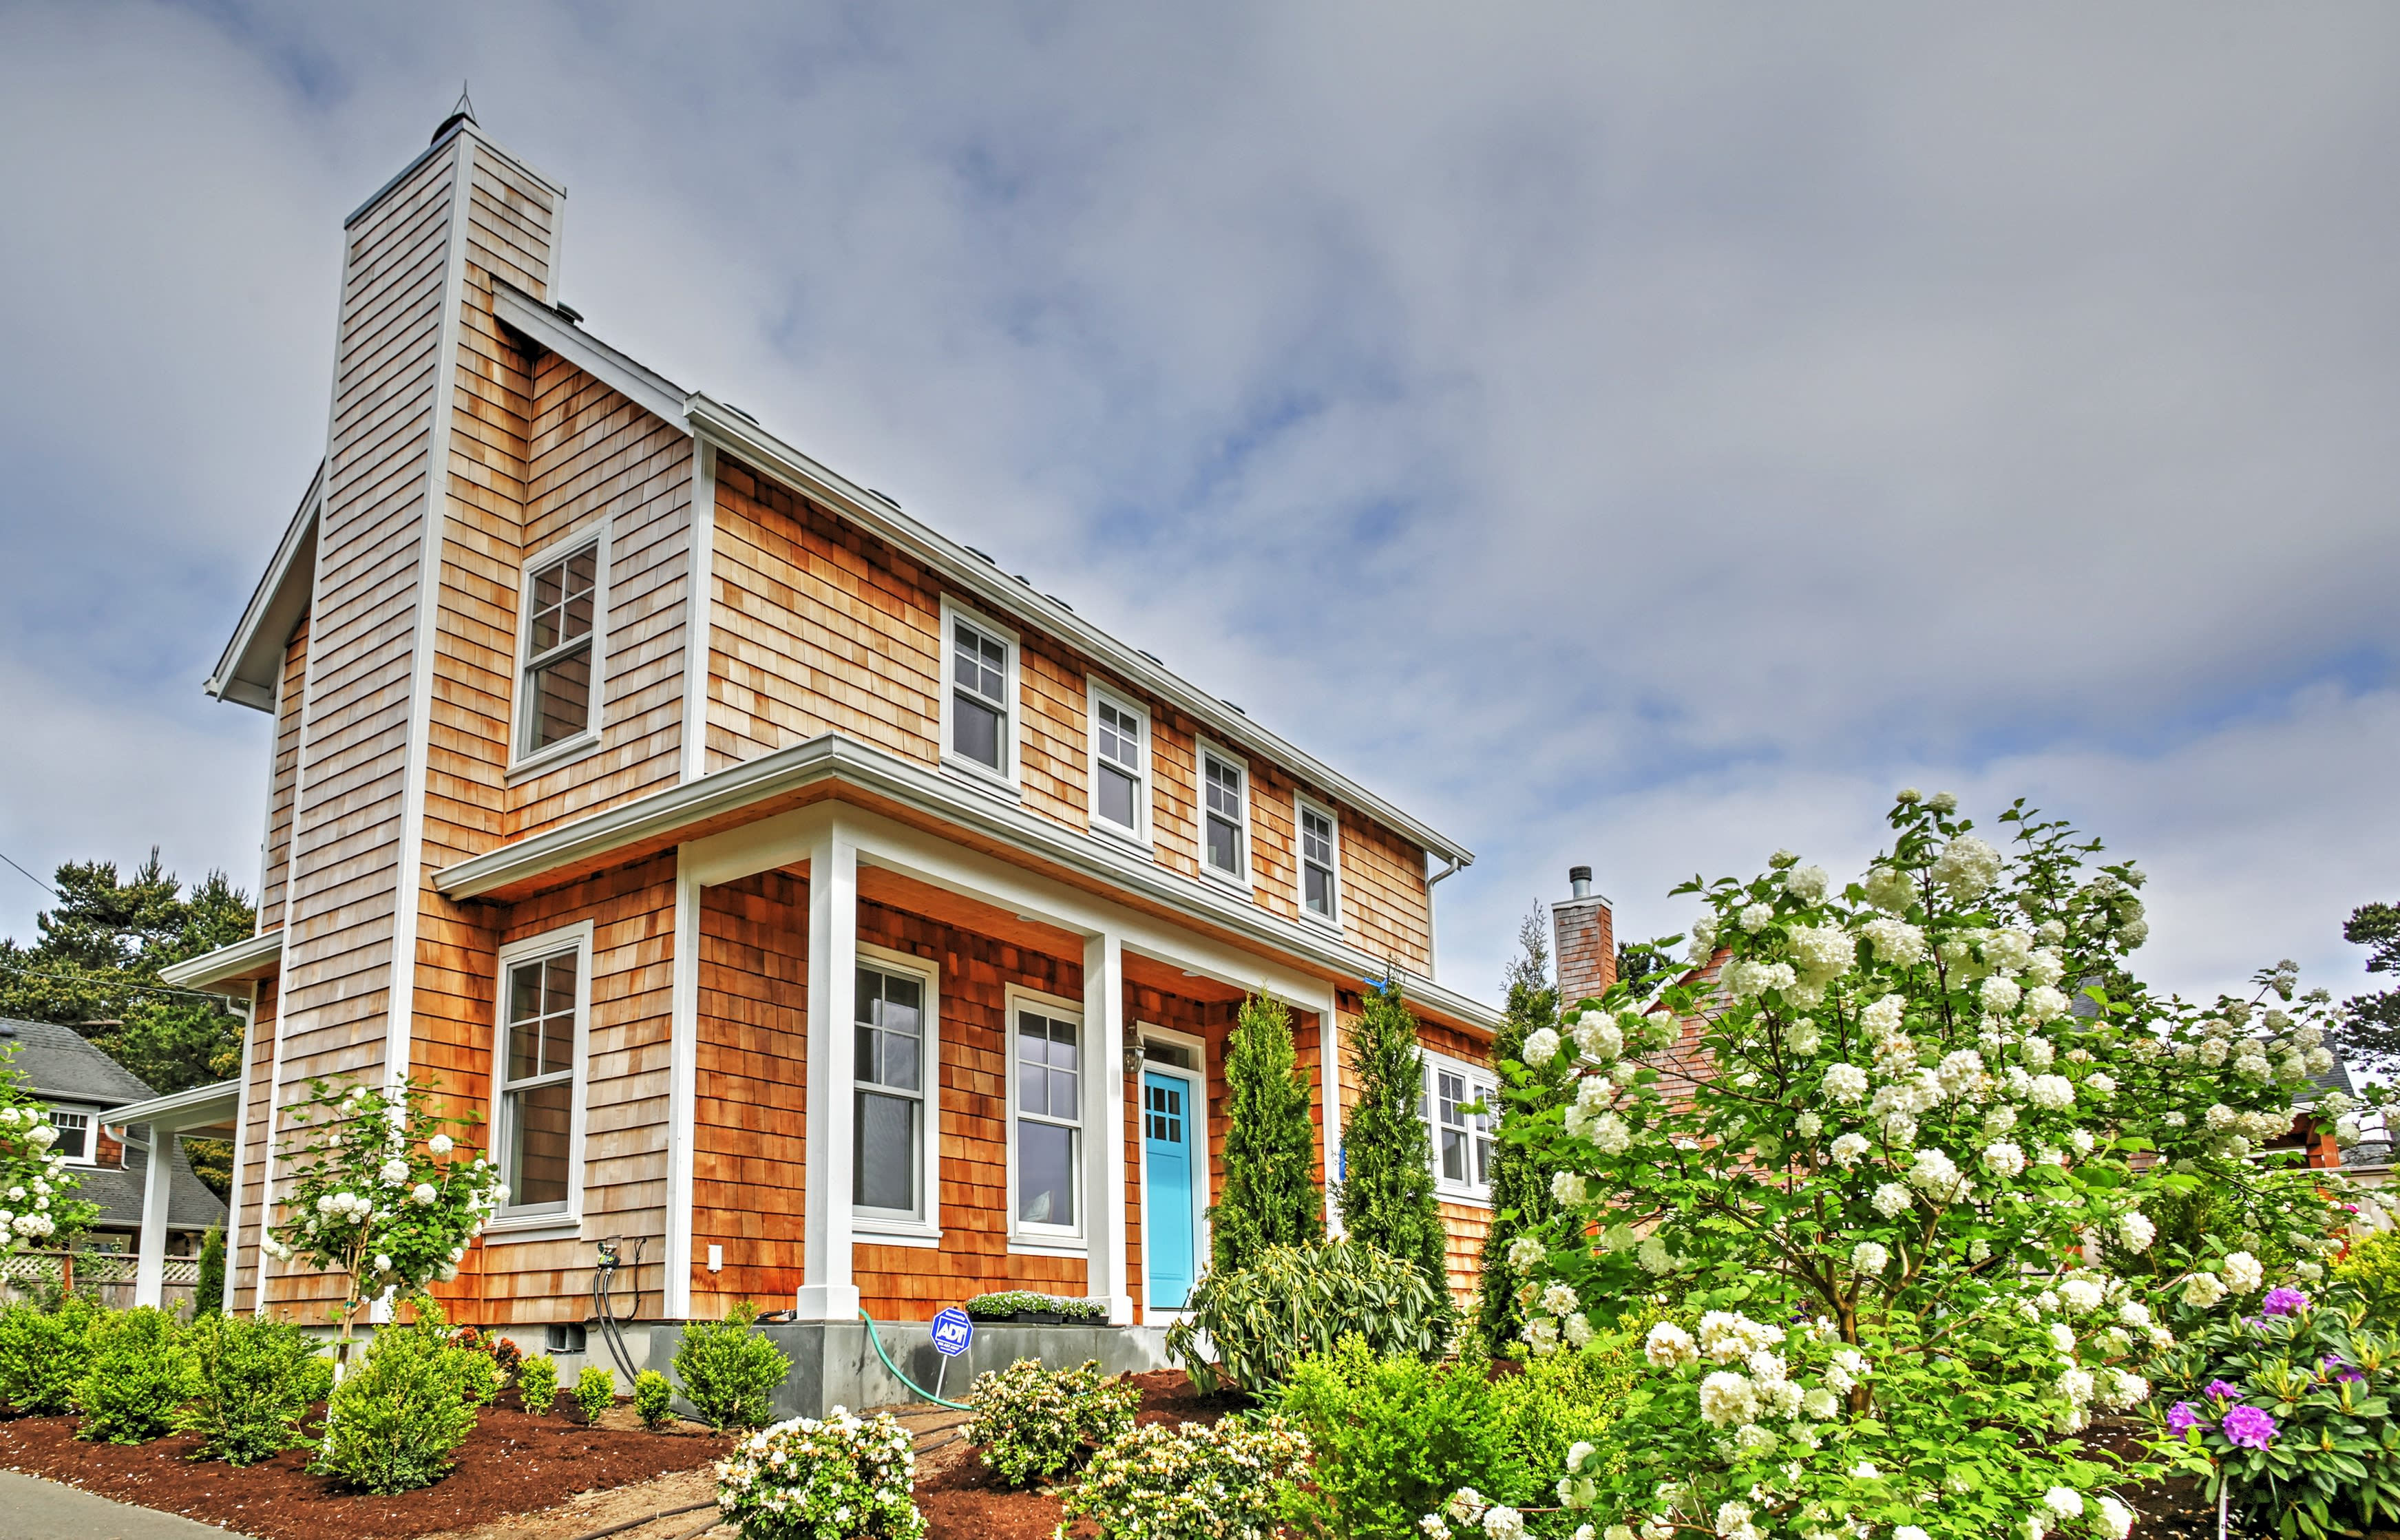 Gearhart Vacation Rental   2-Story Home   3BR   3.5BA   1,900 Sq Ft